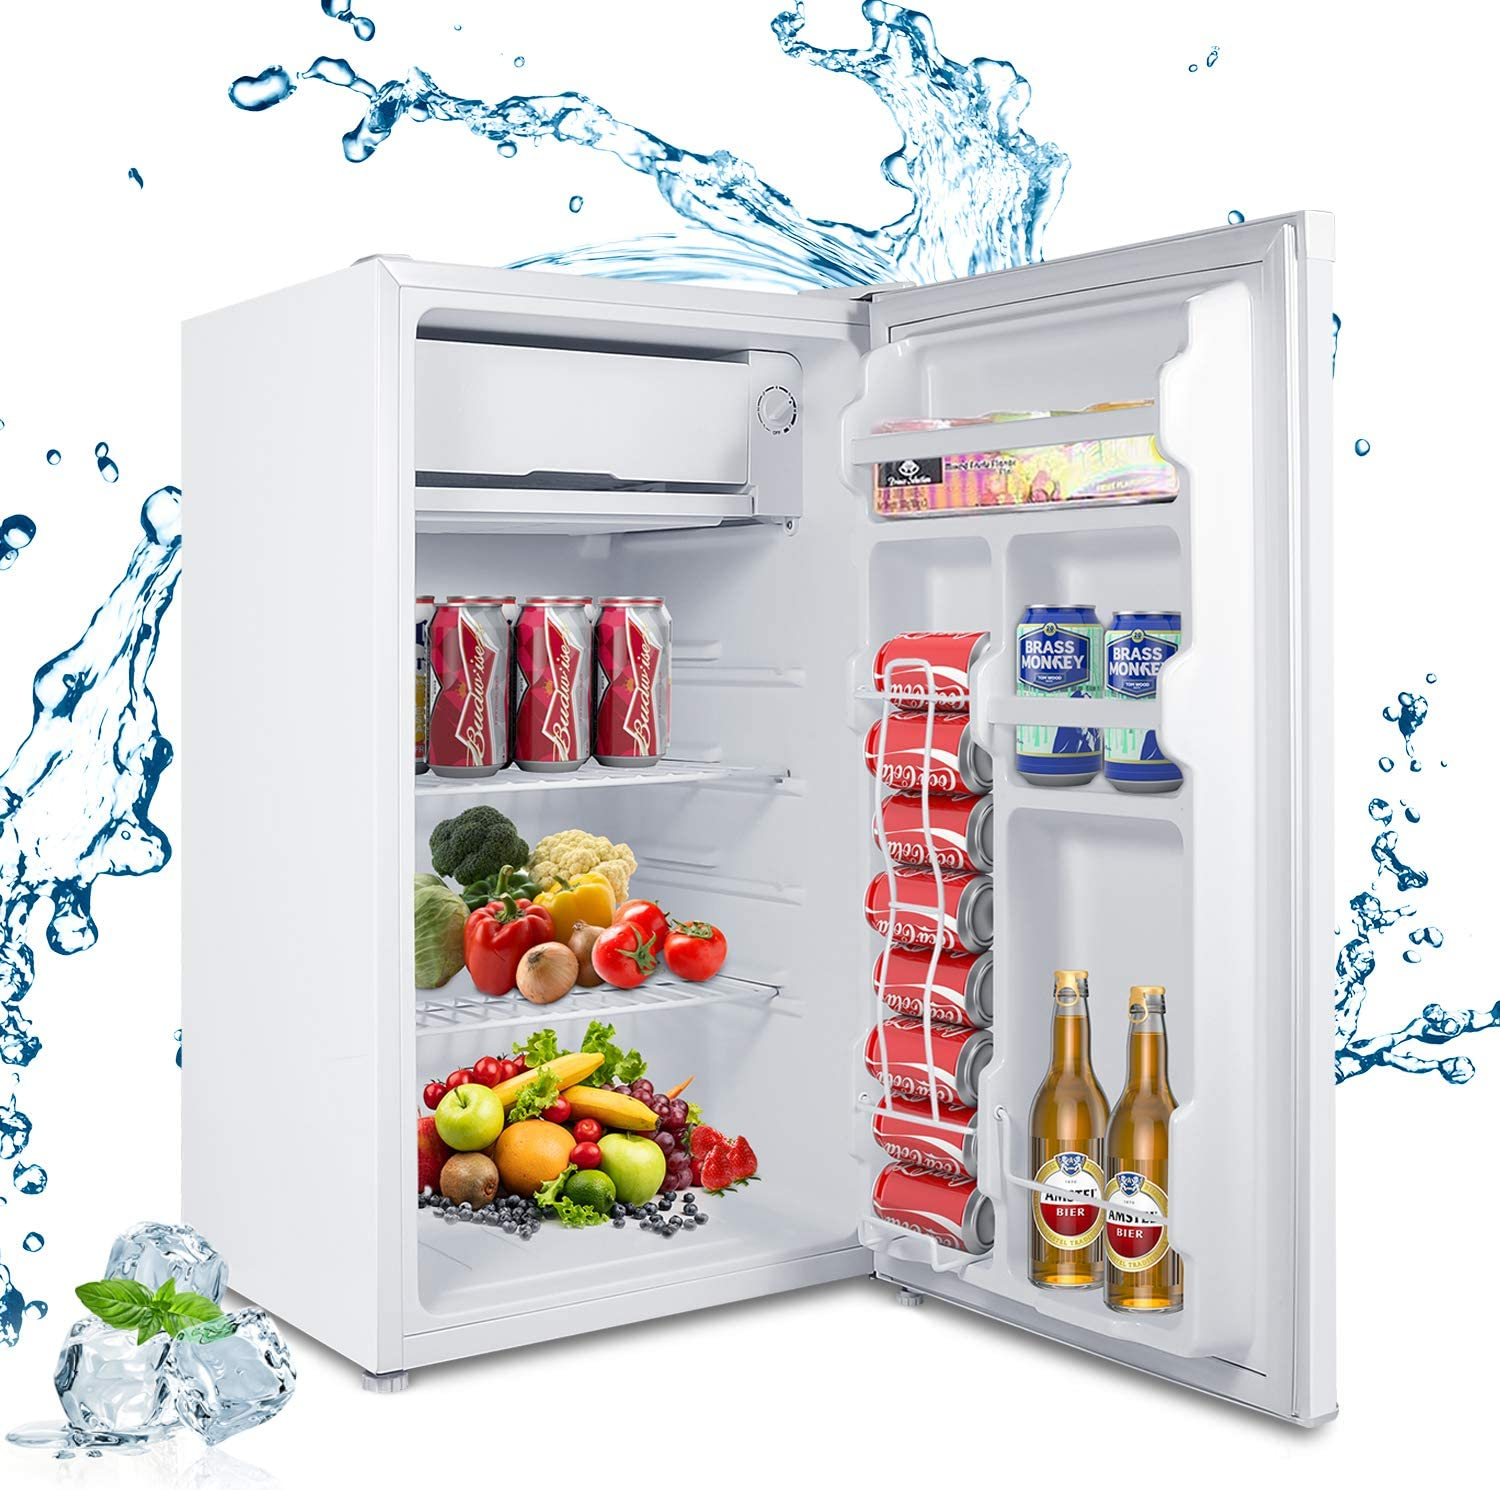 MOOSOO Compact Refrigerator, 3.2 Cu.Ft Mini Fridge with Freezer, Ultra Quiet, Reversible Door,7 Adjustable Thermostat,Energy Saving UL, CSA, DOE Certificated, Ideal Food and Drink Beer Storage for Kitchen,Dorm,Office,Bedroom,Apartment (White)